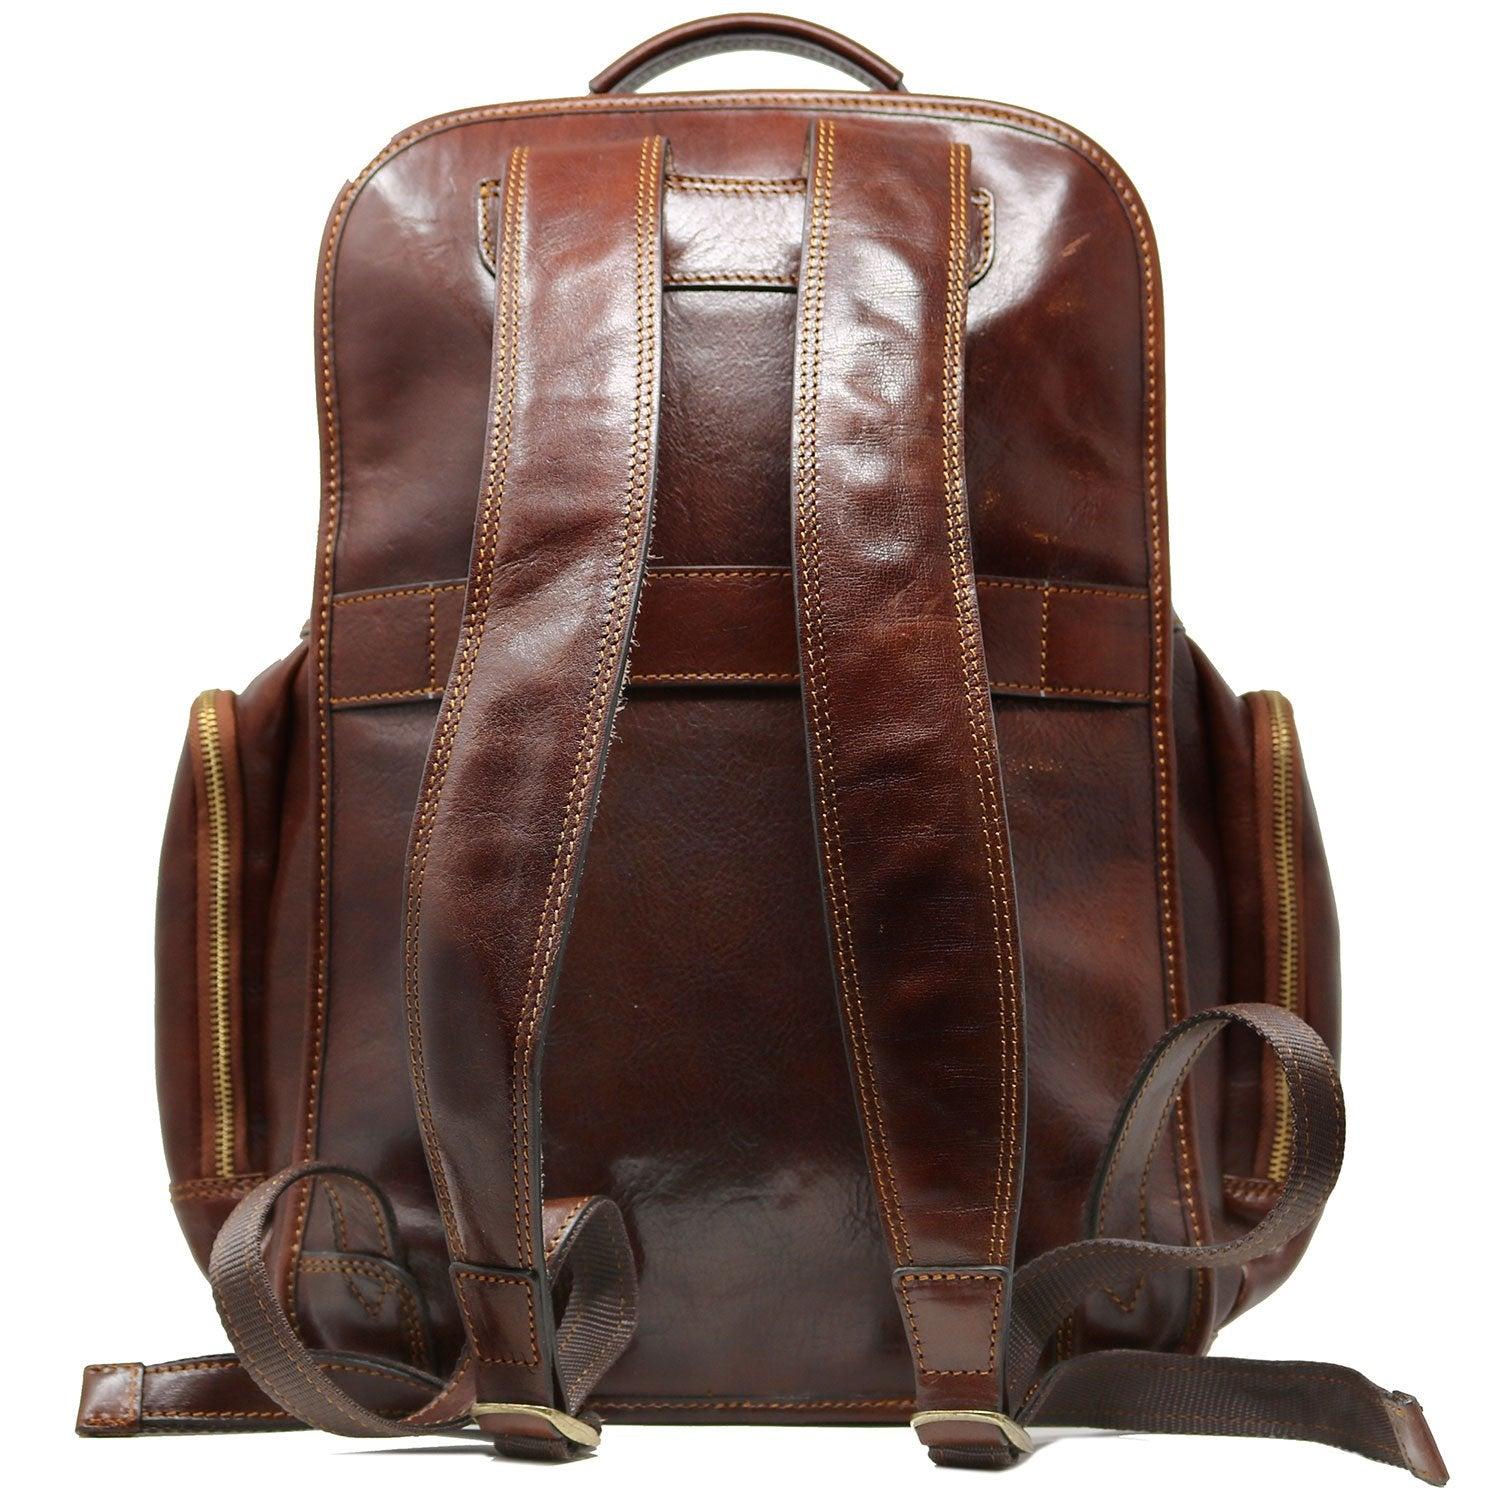 Leather Backpack Floto Italian Cargo Pocket Knapsack Military Pack Vecchio Brown - Back View